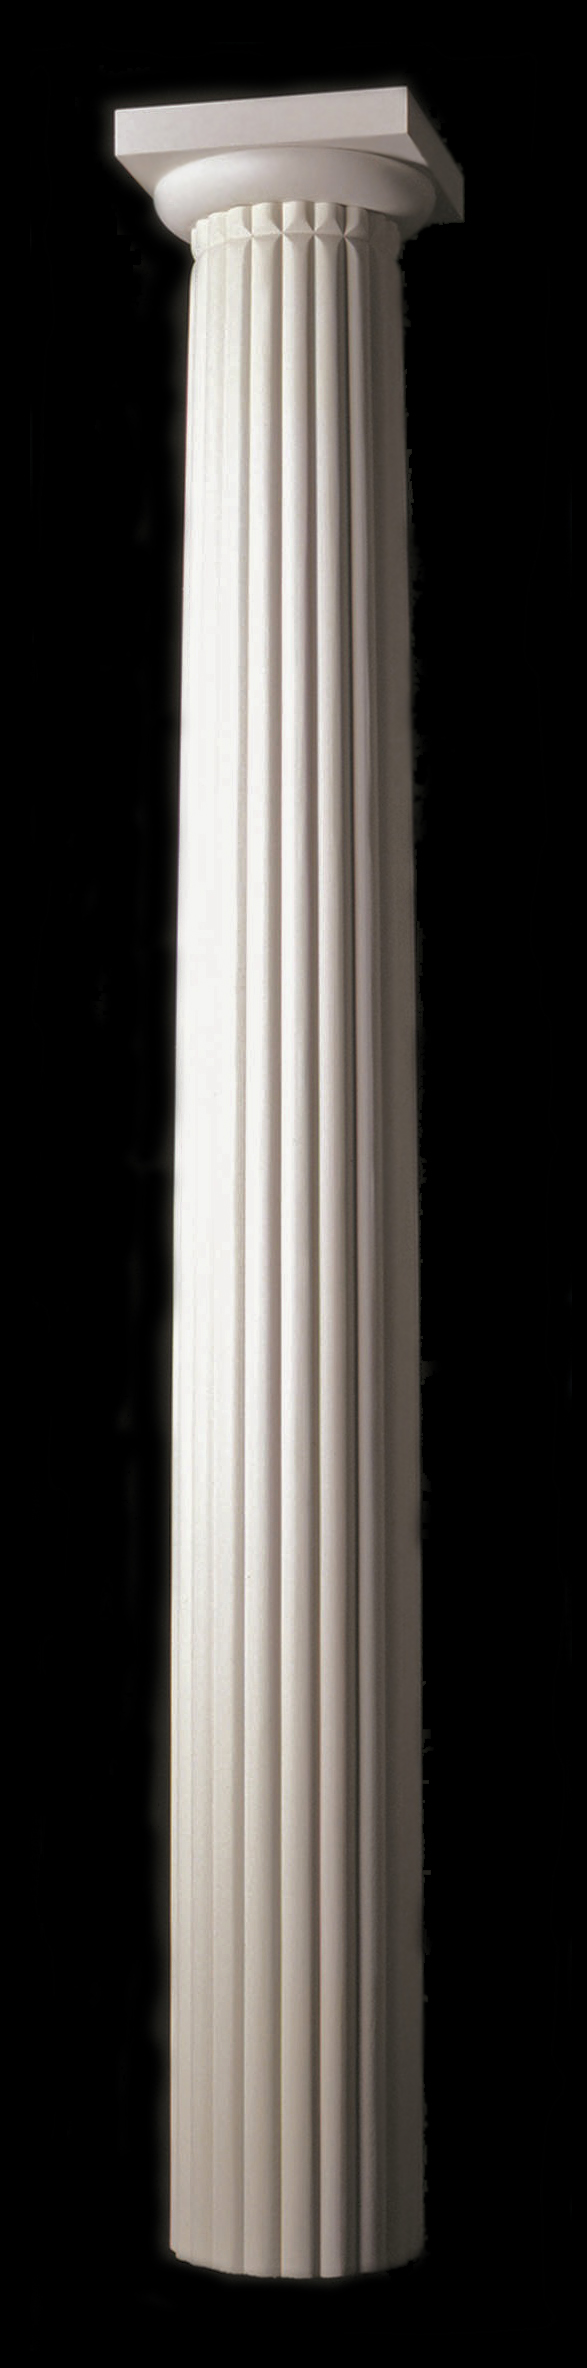 Architectural Column Base : Reeded wood column fluting tuscan columns